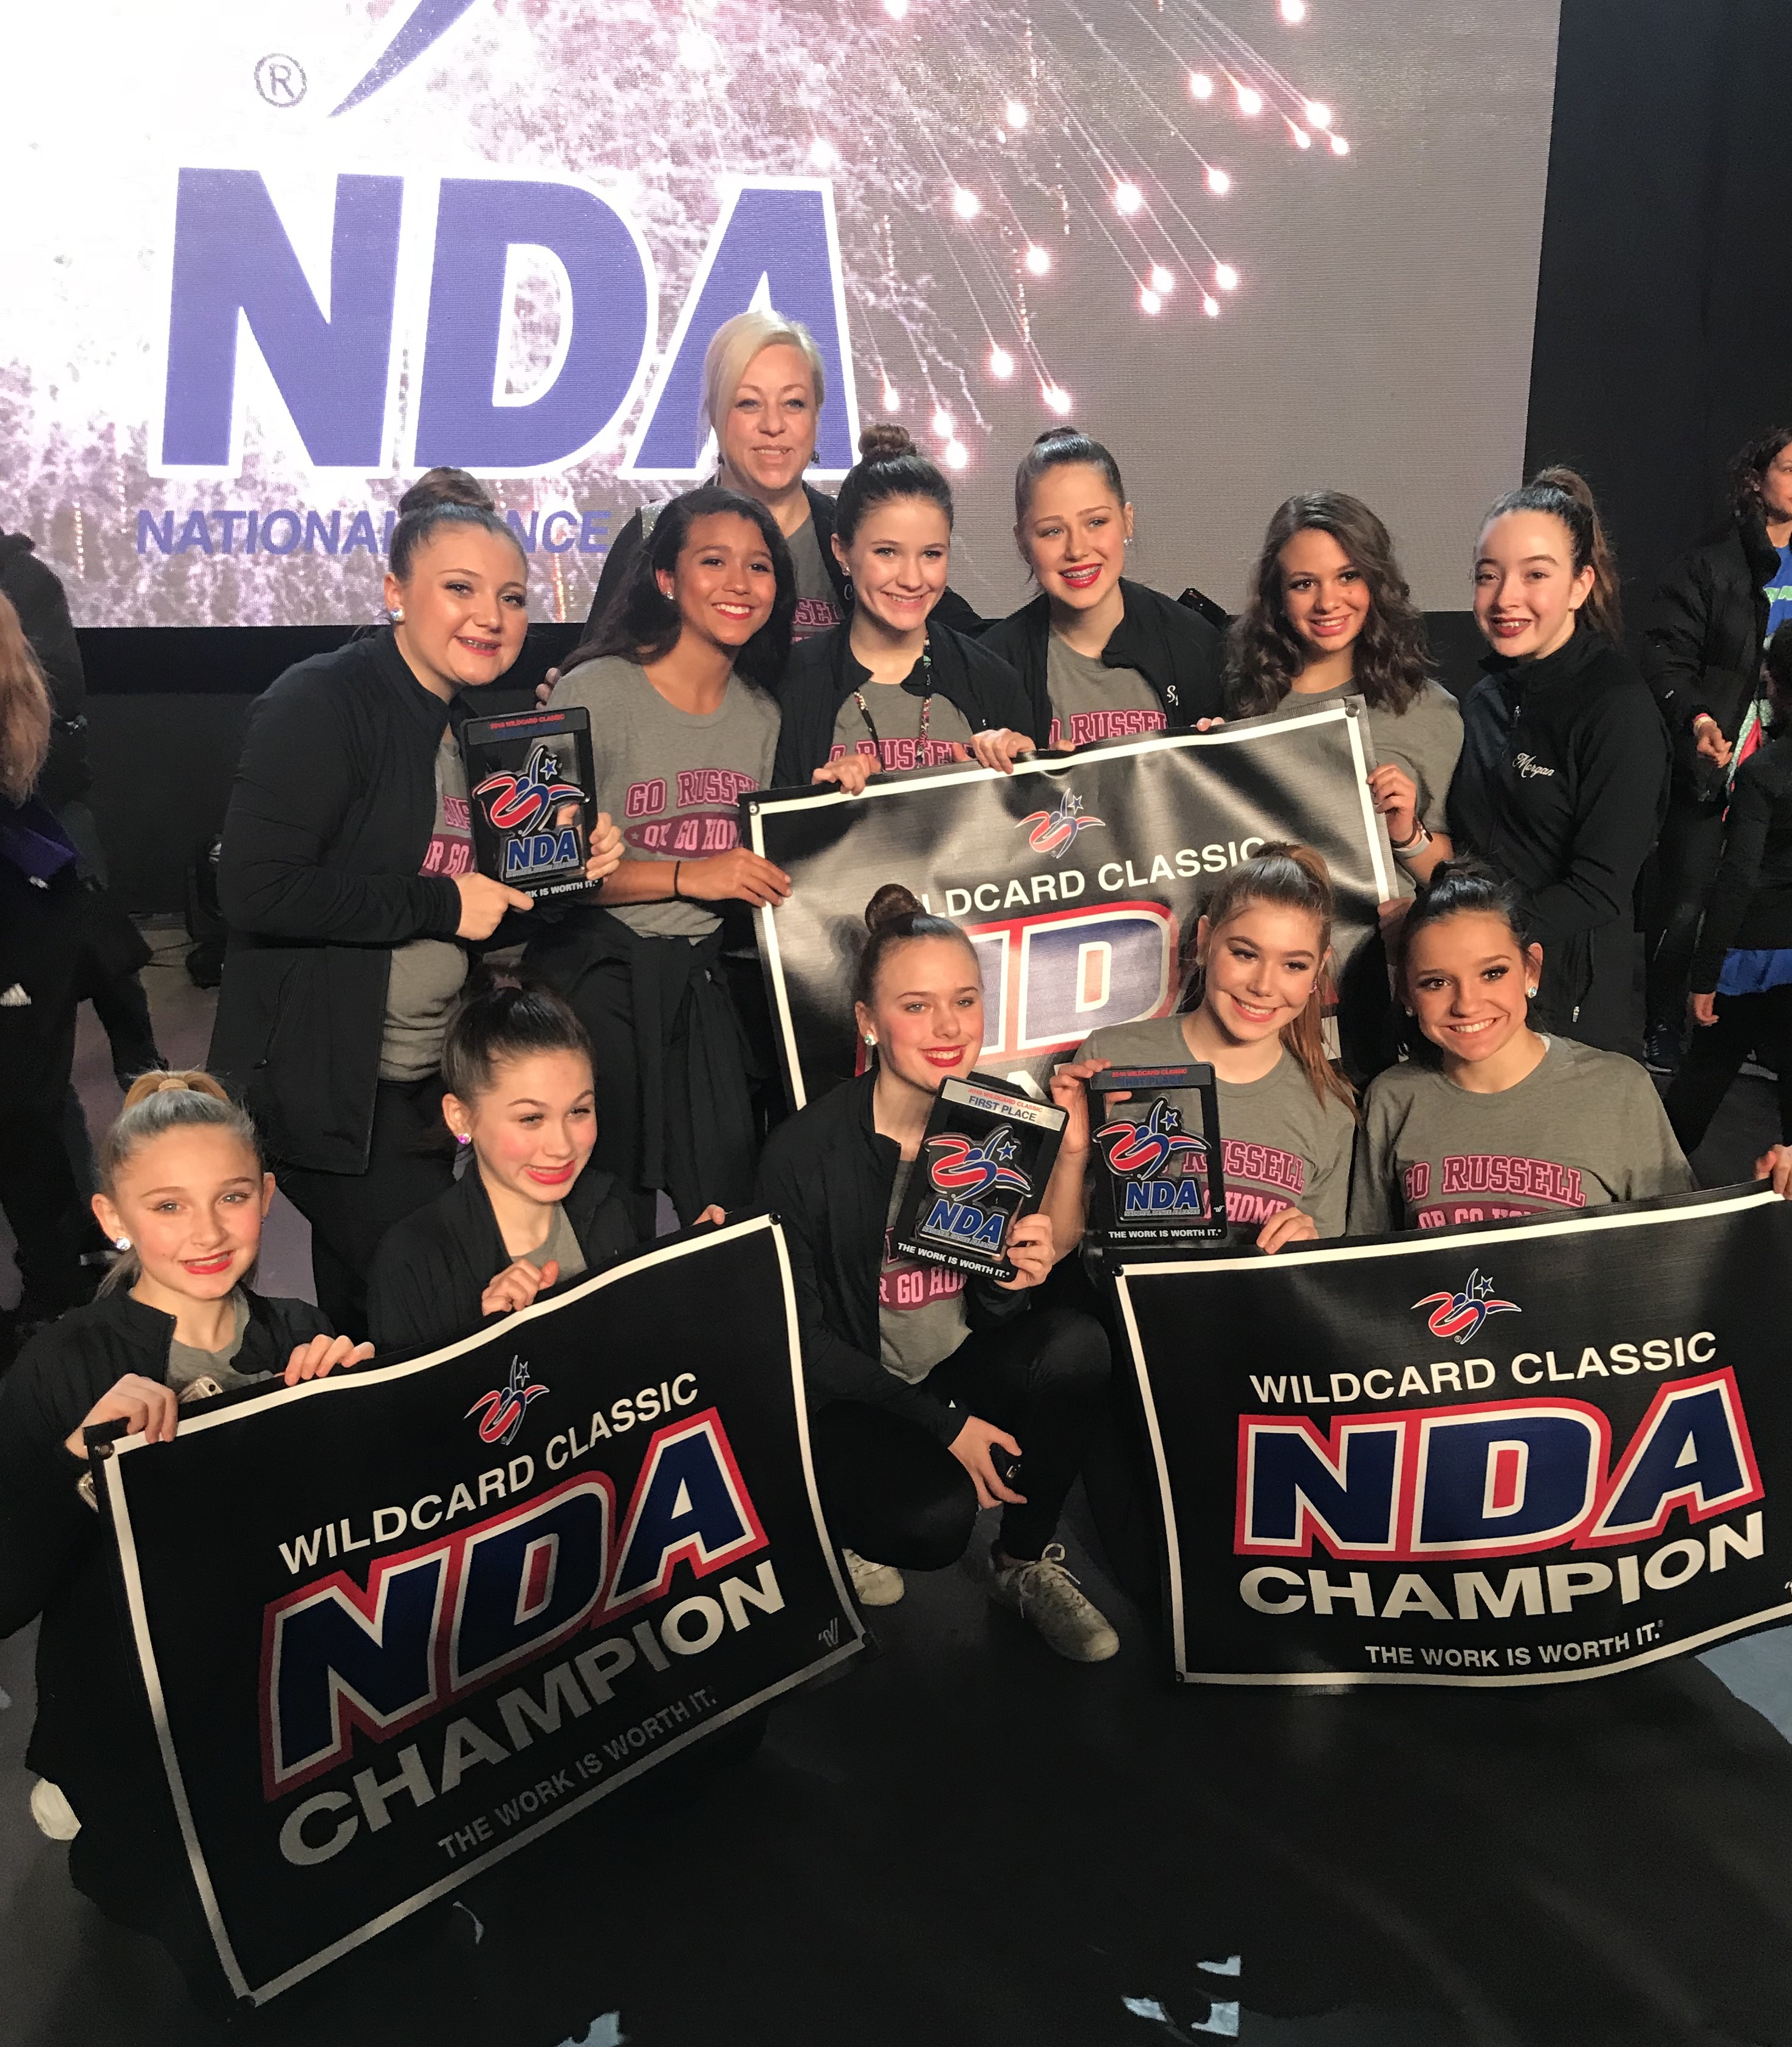 rms dance team at nationals